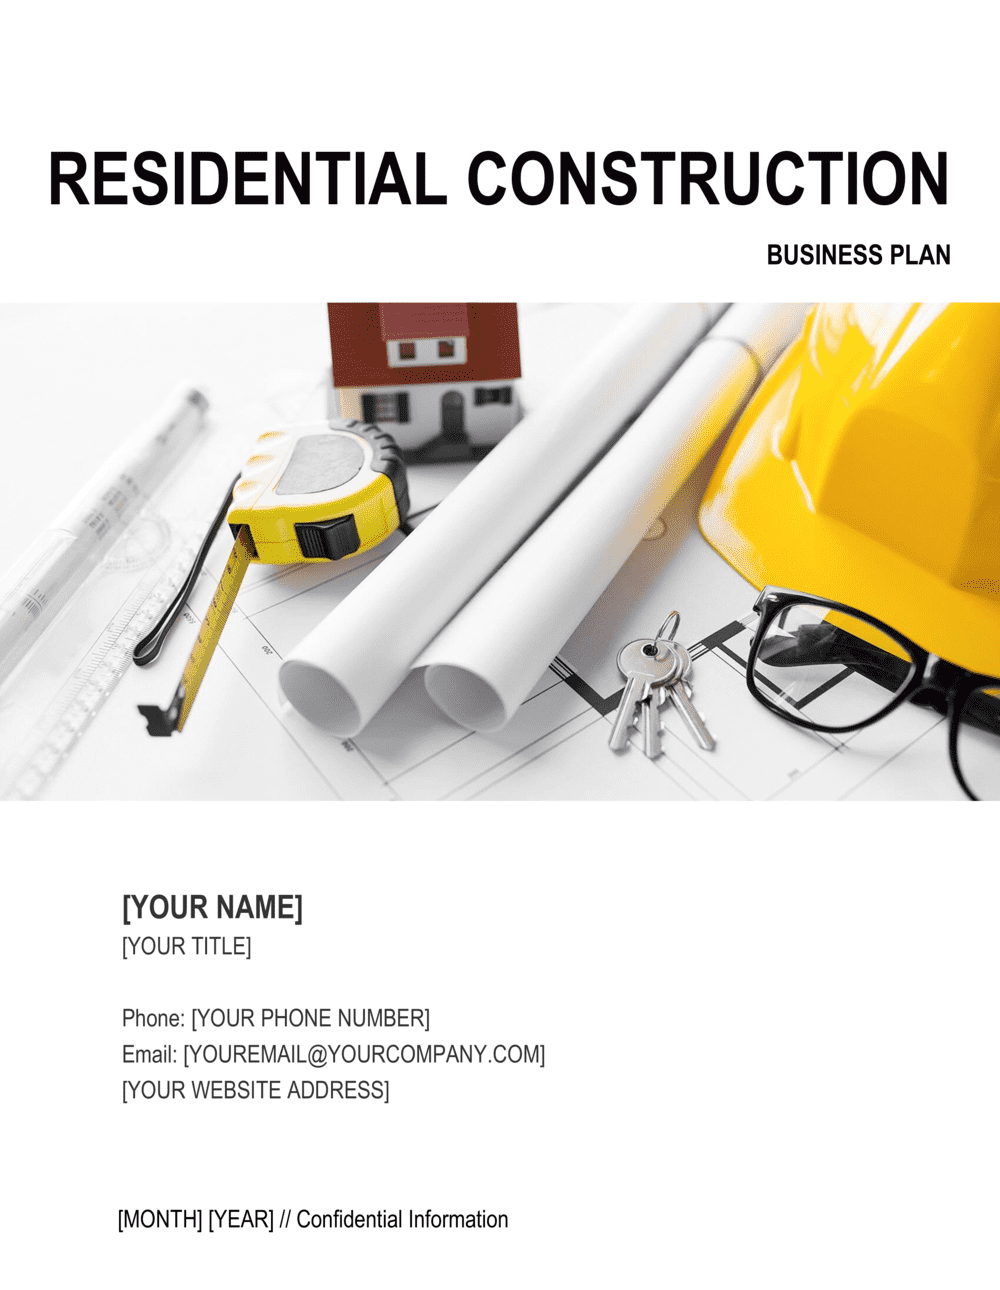 Business-in-a-Box's Residential Construction Business Plan Template